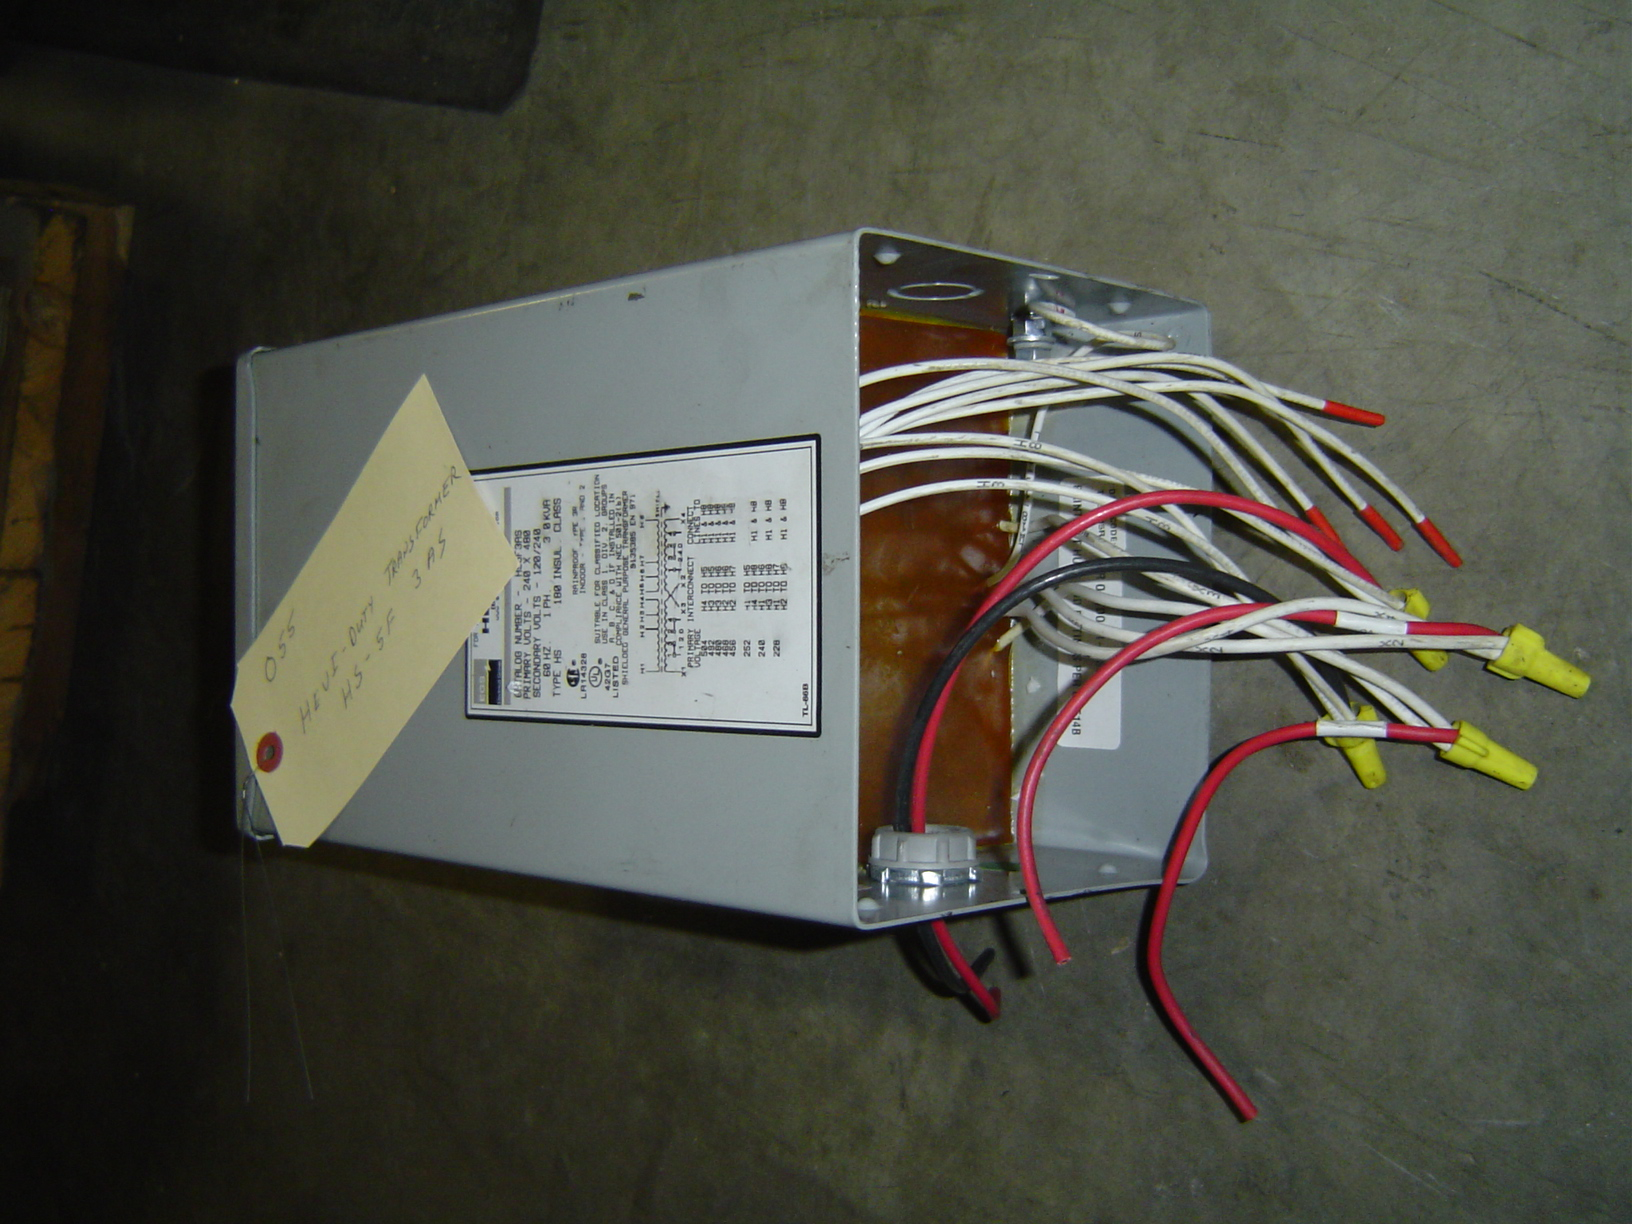 HEVI - DUTY TRANSFORMER, CATALOG NUMBER HS1F 1BS